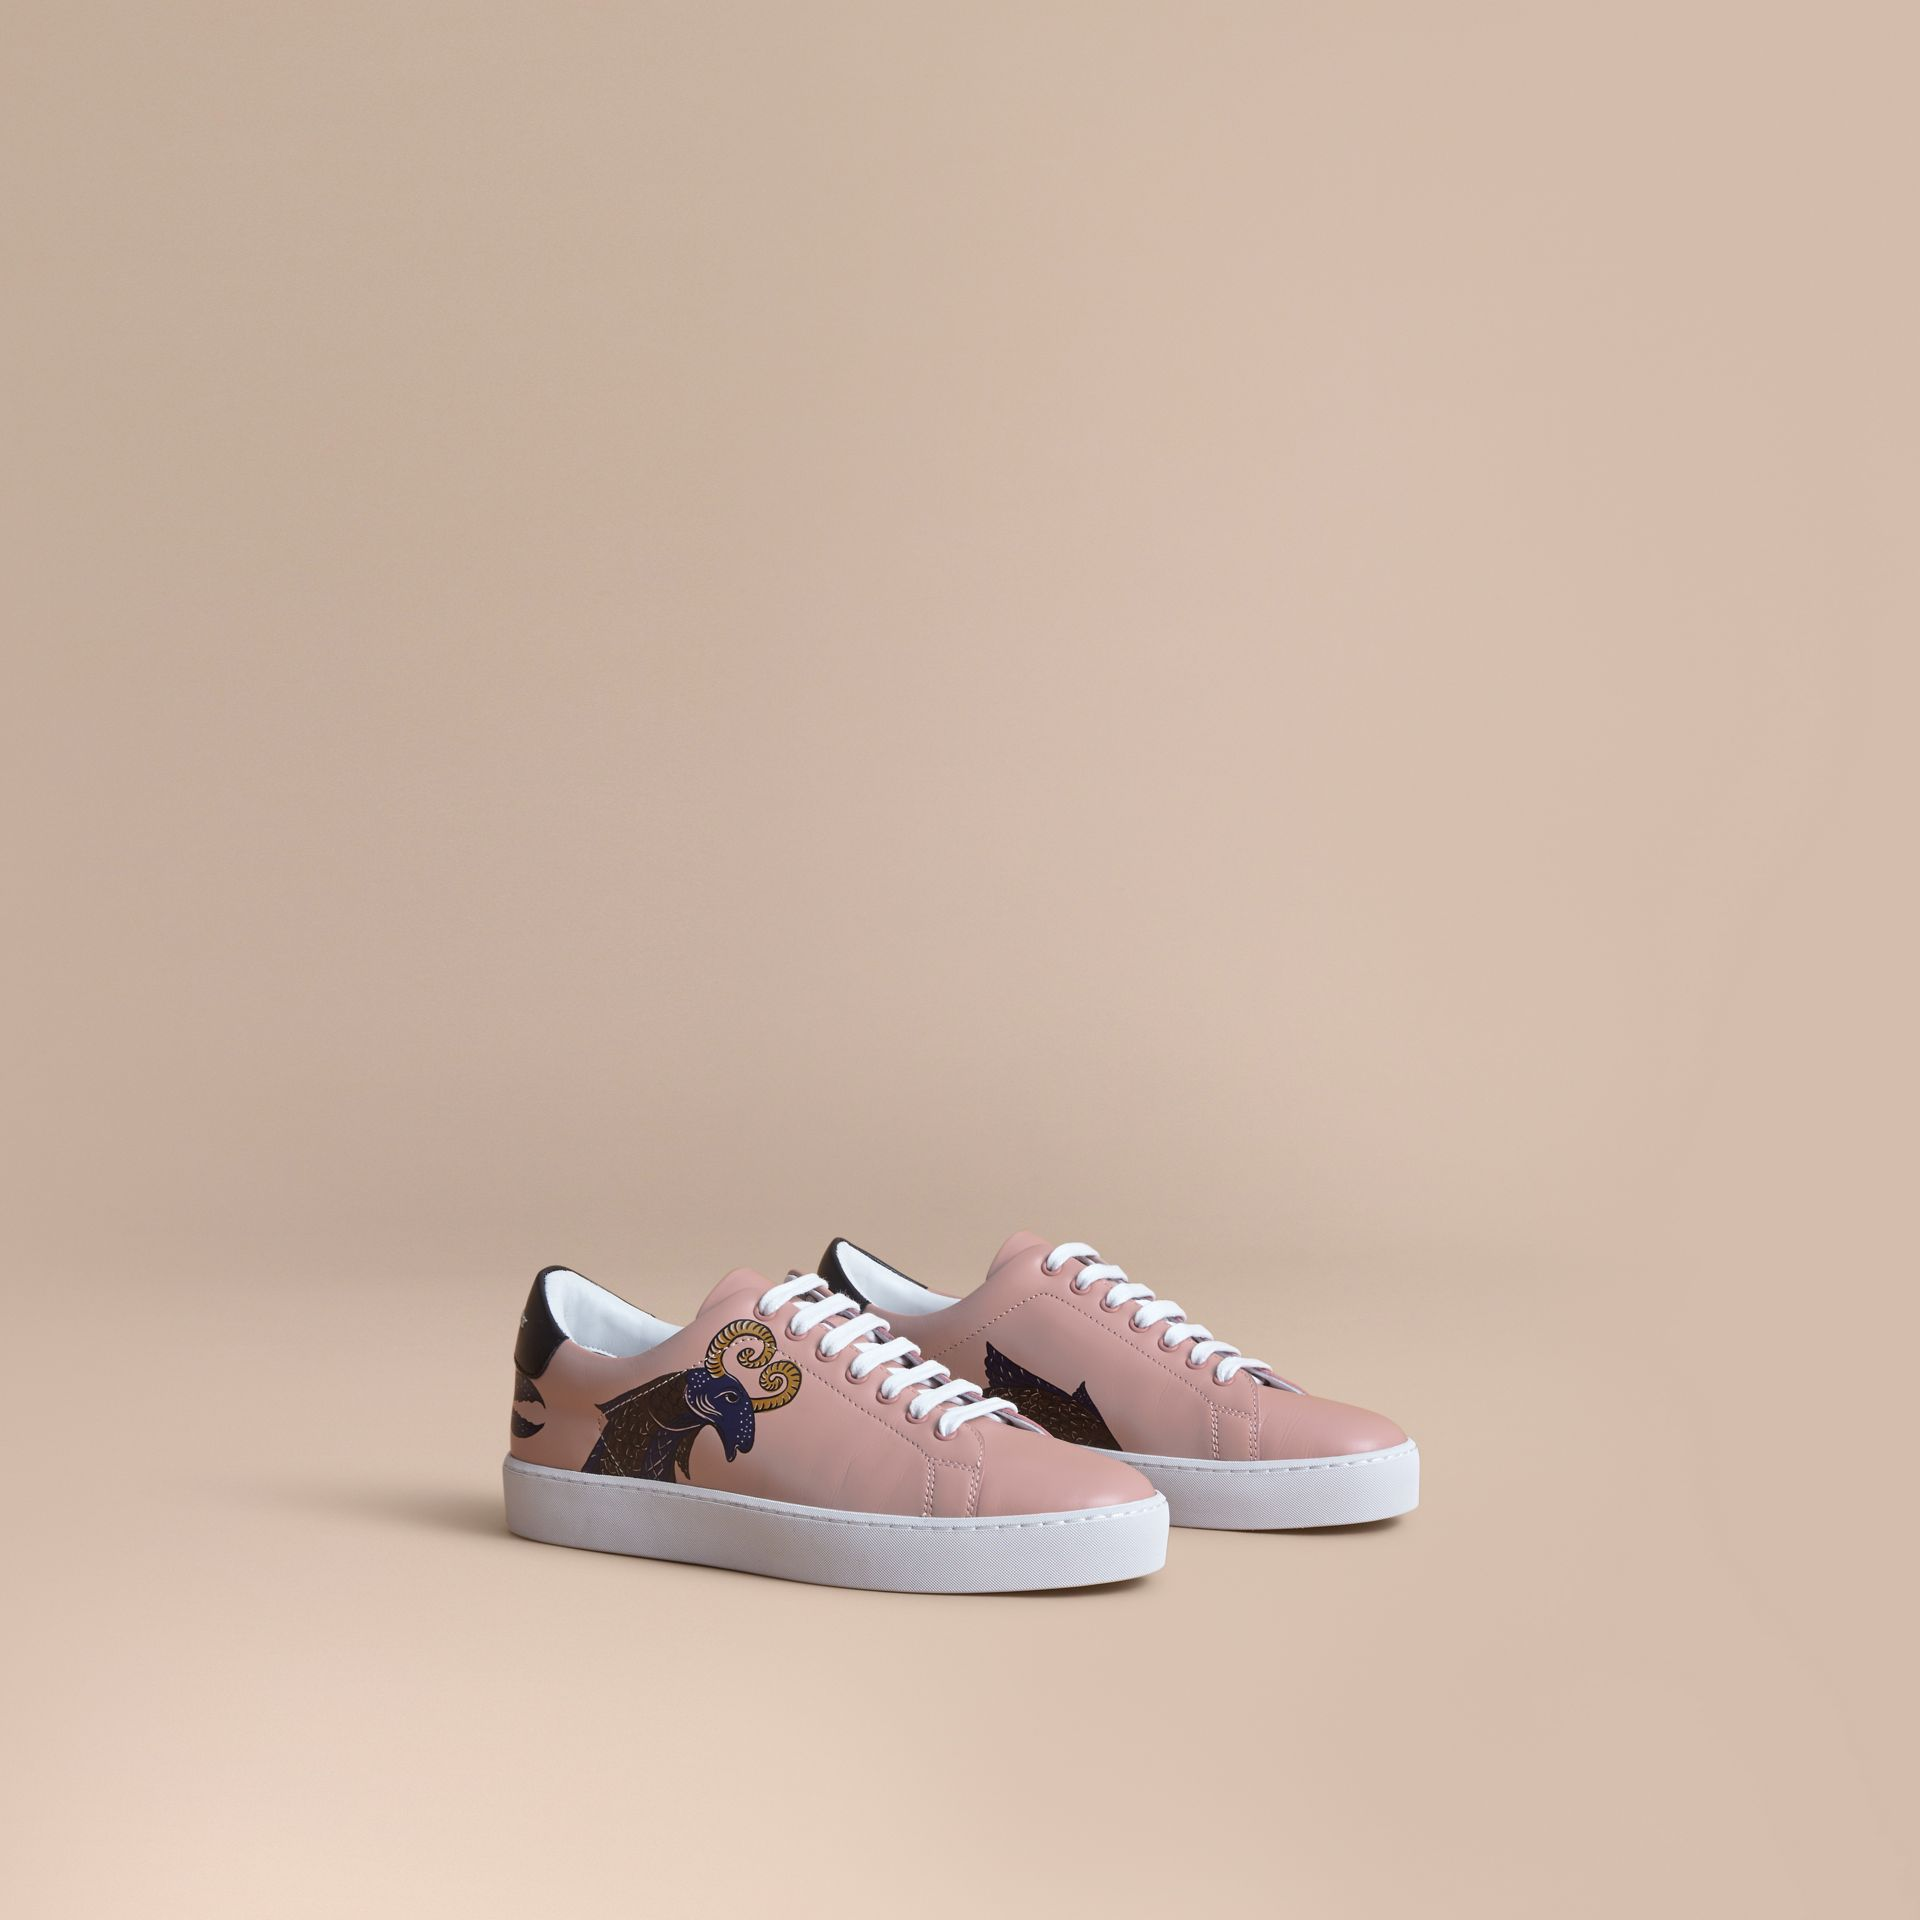 Beasts Print Leather Trainers in Ivory Pink - Women | Burberry Australia - gallery image 1